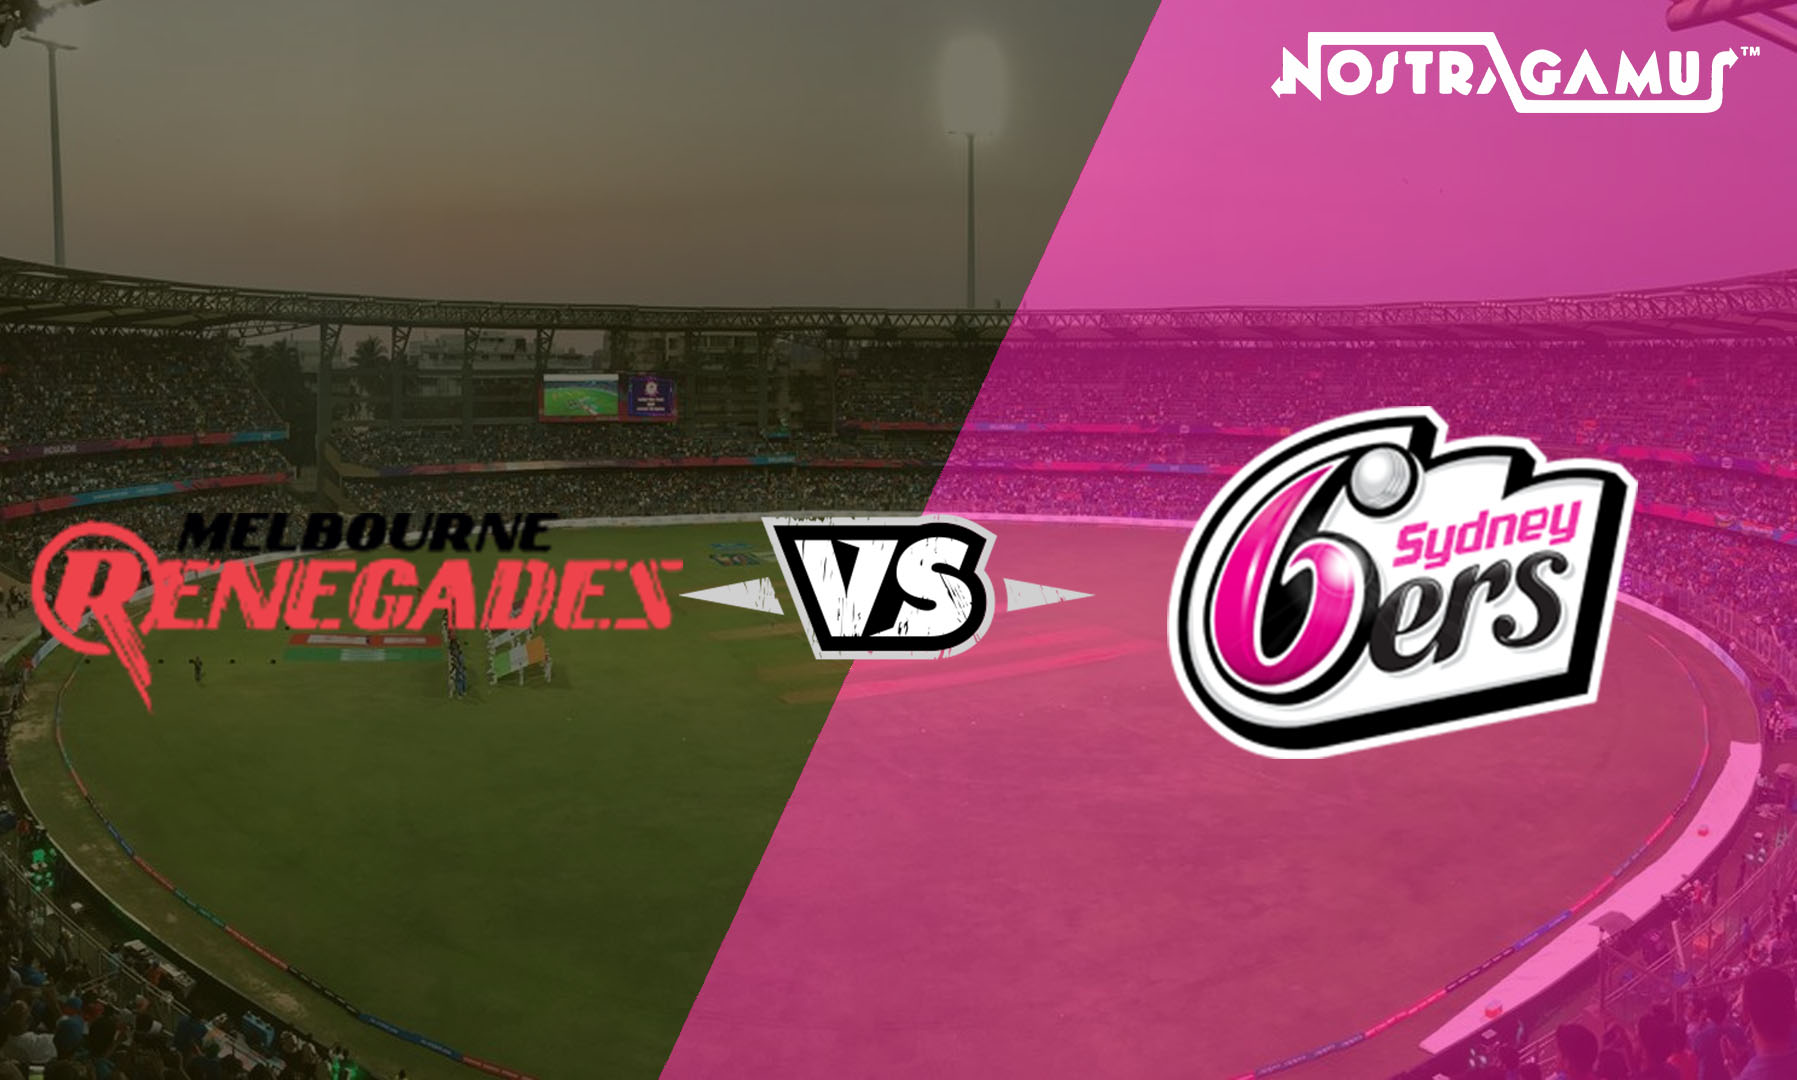 BBL 2019 Match Prediction: Melbourne Renegades vs Sydney Sixers